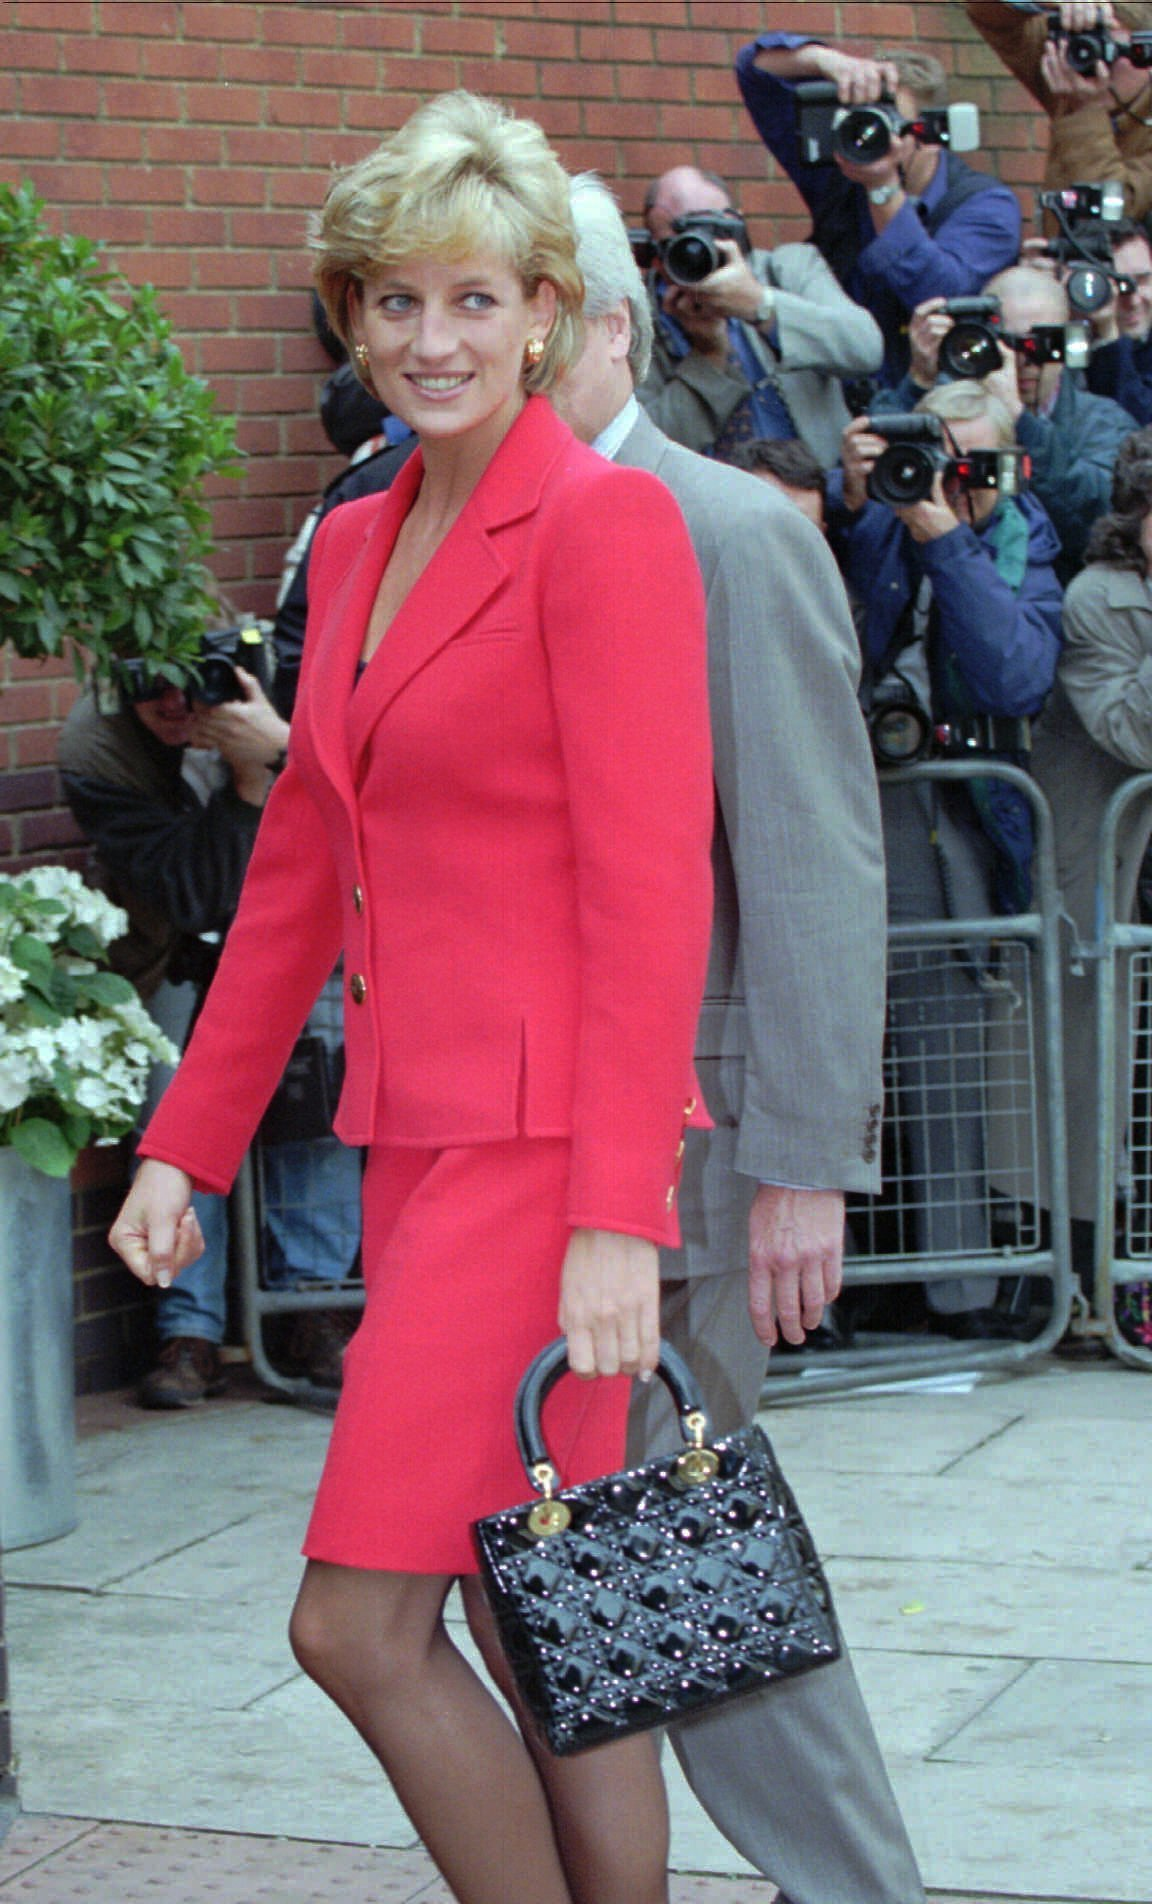 "FILE - In this Oct. 8, 1996 file photo, Diana, Princess of Wales walks past the press in London. This outfit is featured in an exhibition of 25 dresses and outfits worn by Diana entitled ""Diana: Her Fashion Story"" at Kensington Palace in London, opening on Friday, Feb. 24, 2017. (AP Photo/Adrian Dennis, file)"